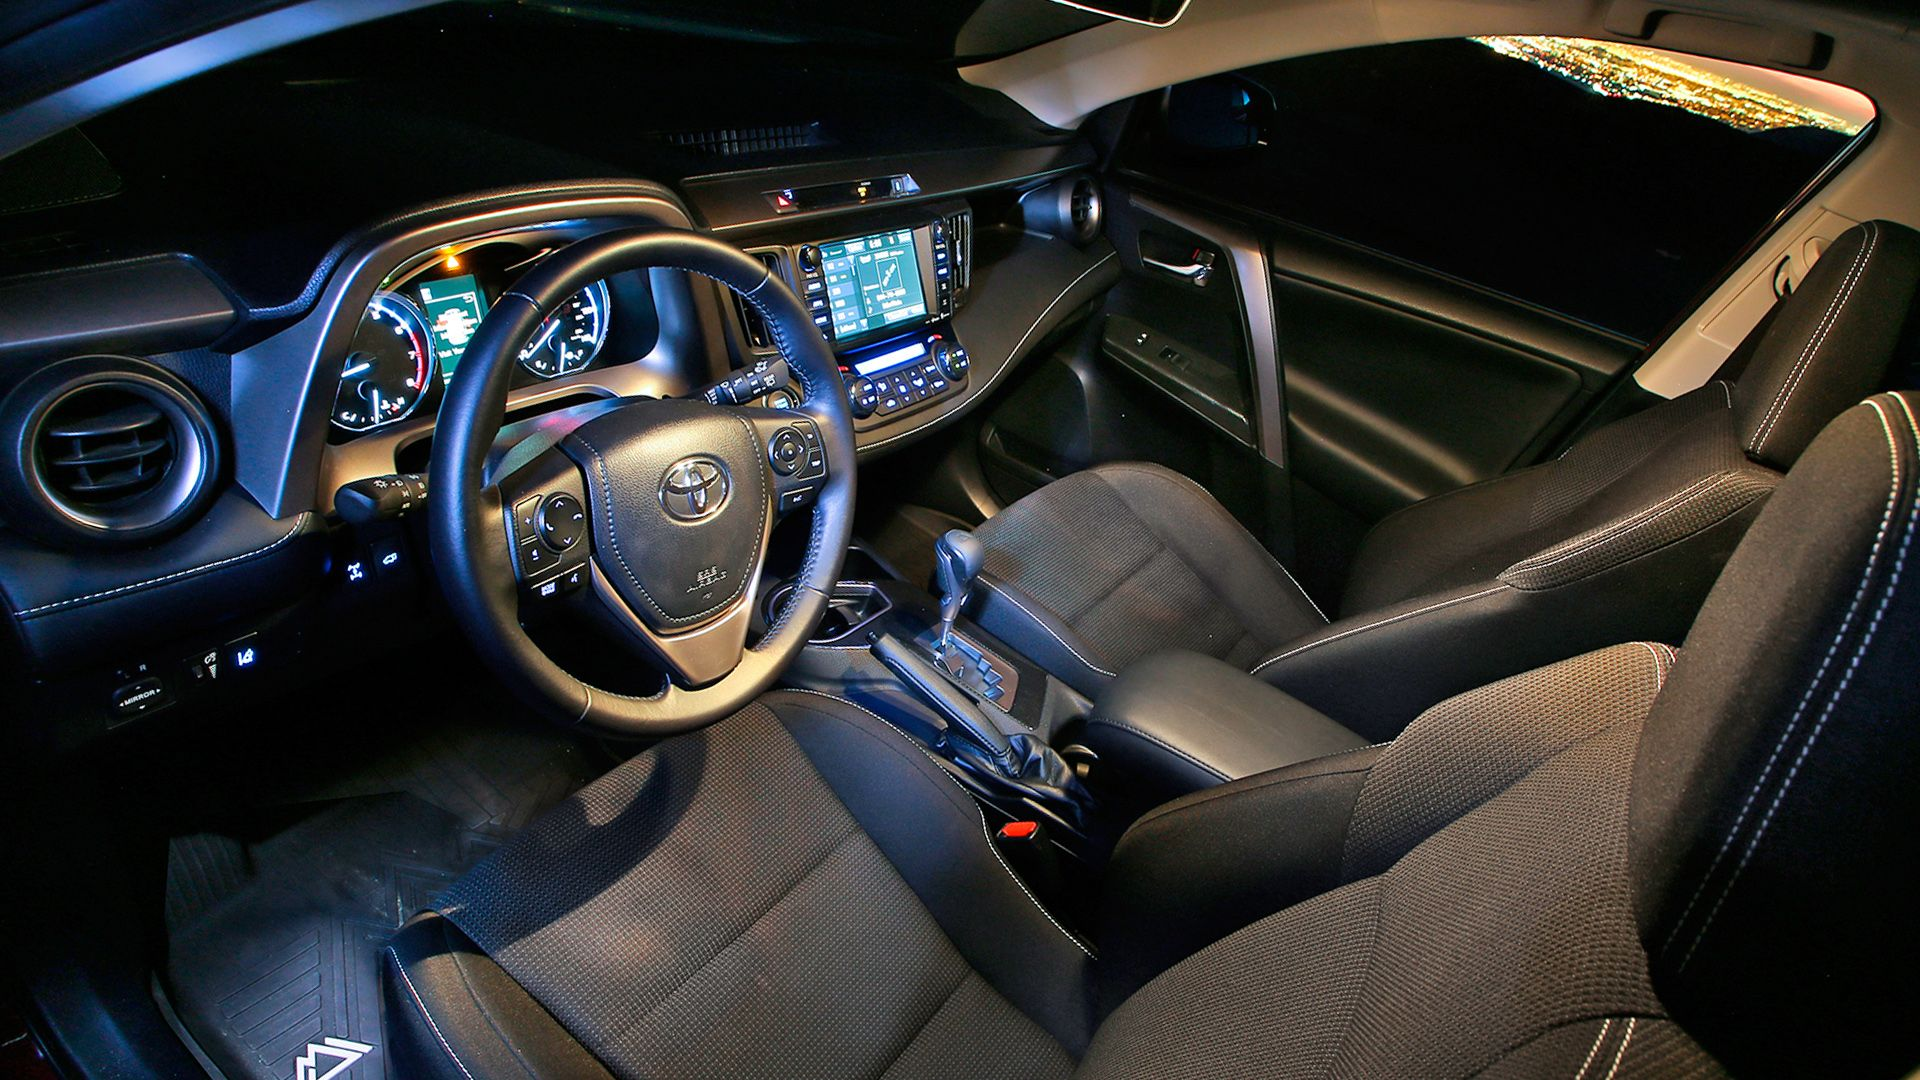 New 2019 Toyota RAV4 Interior Design